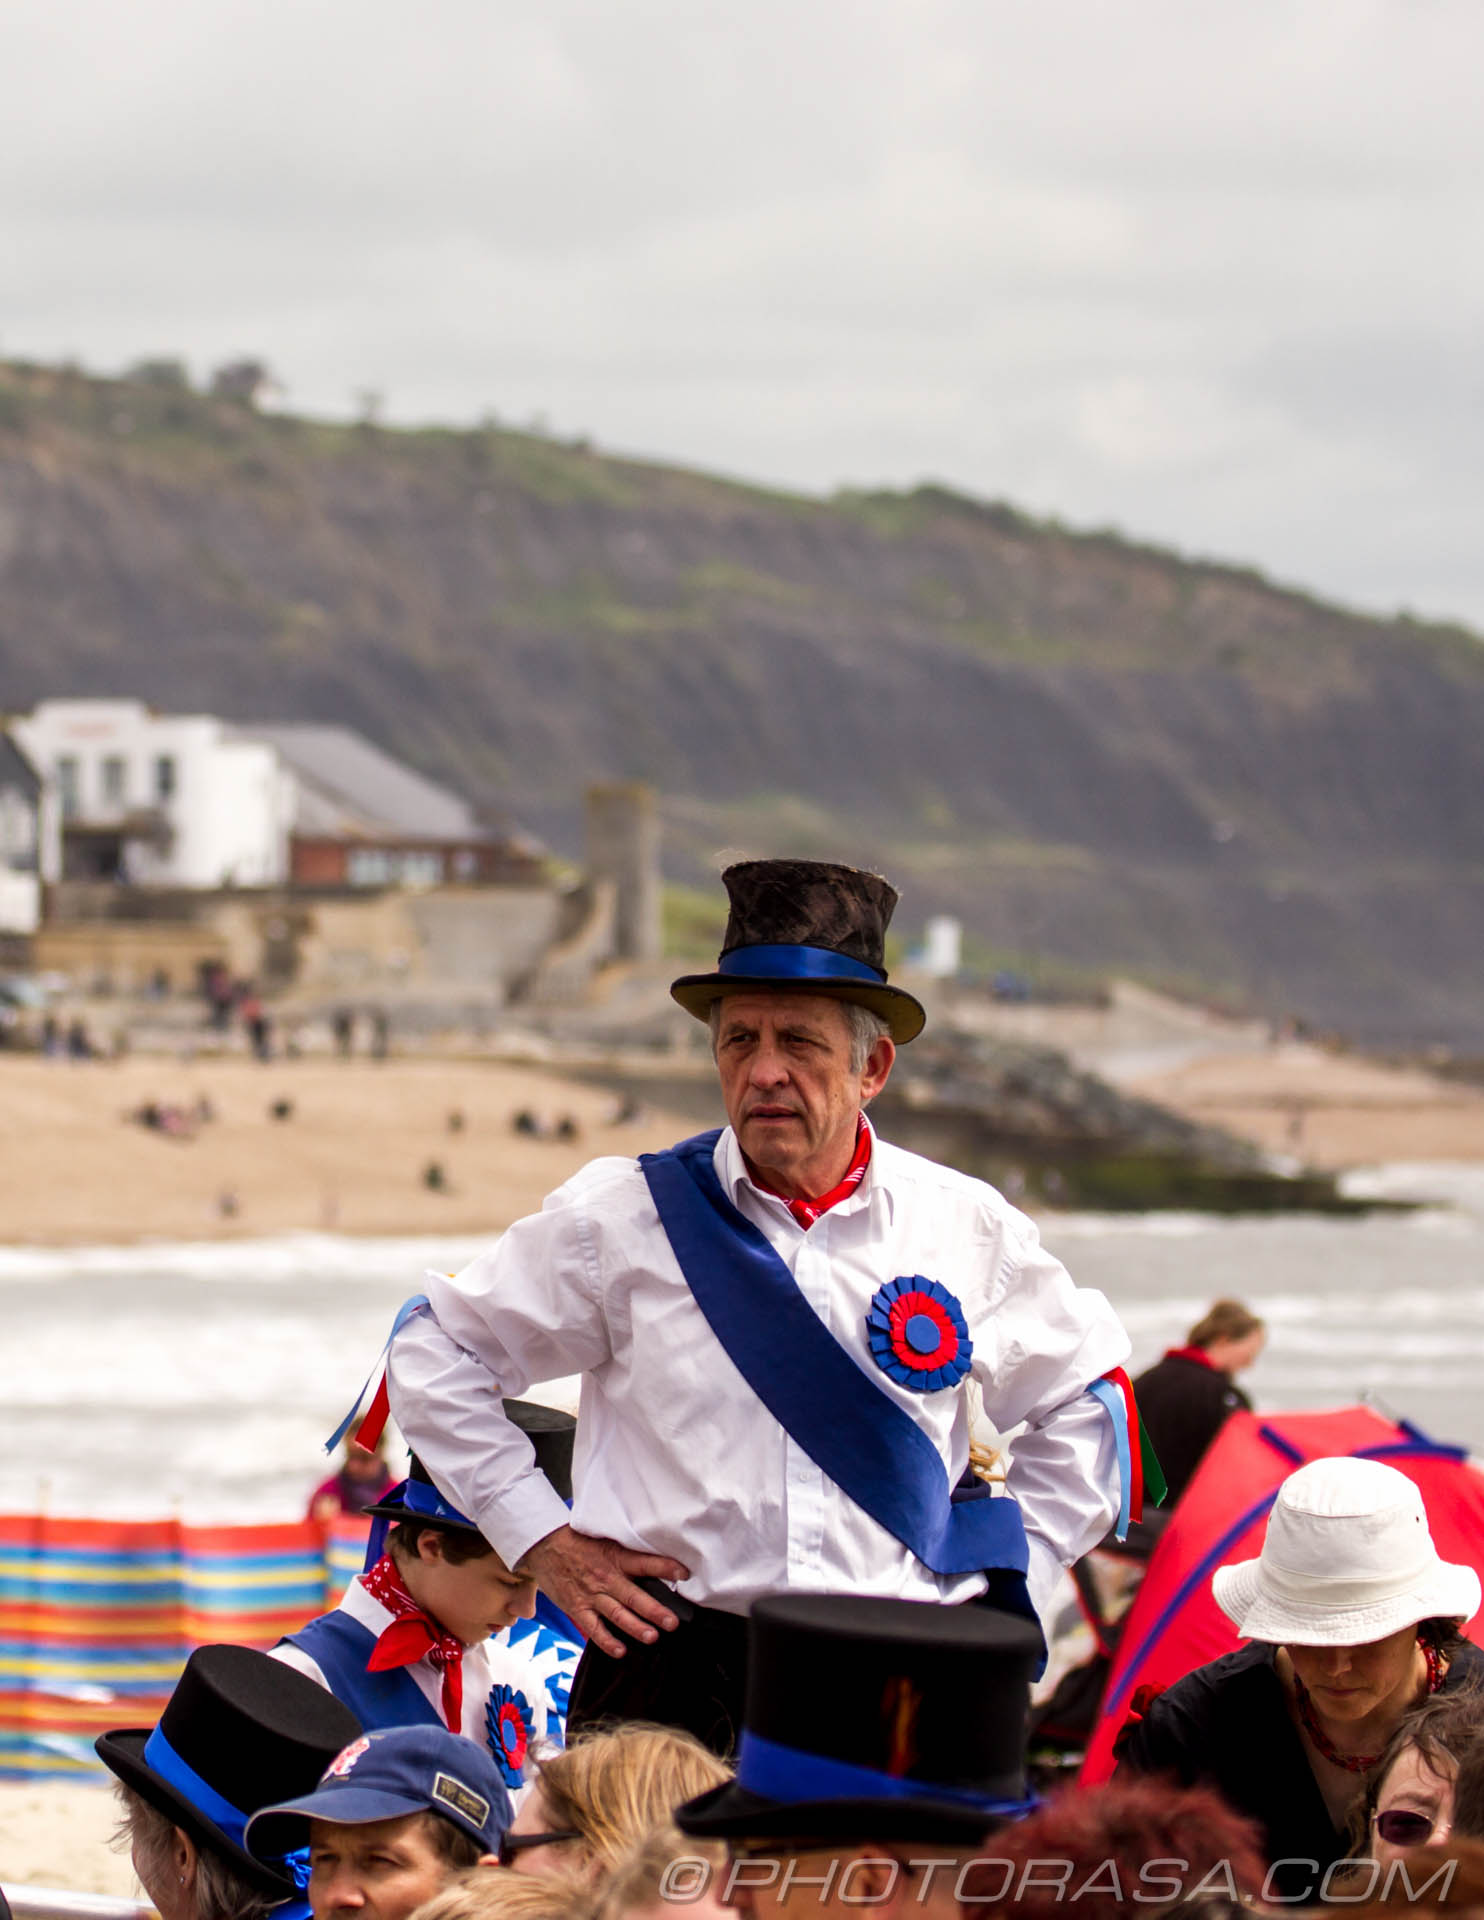 http://photorasa.com/lyme-regis/morris-dancer-in-traditional-clothes/